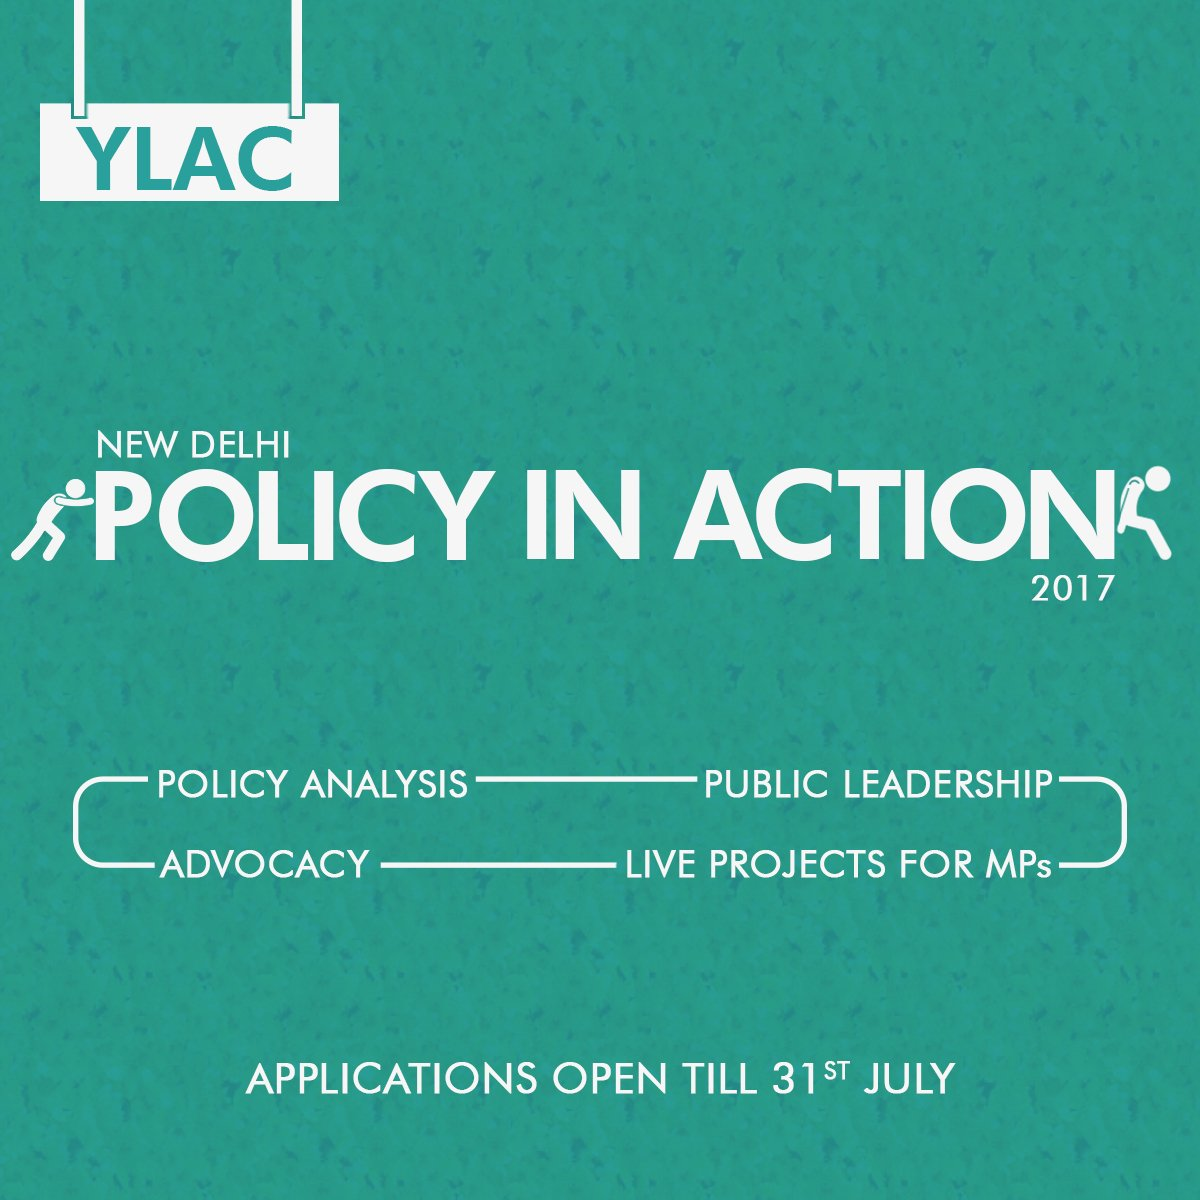 YLAC India's Policy in Action Program